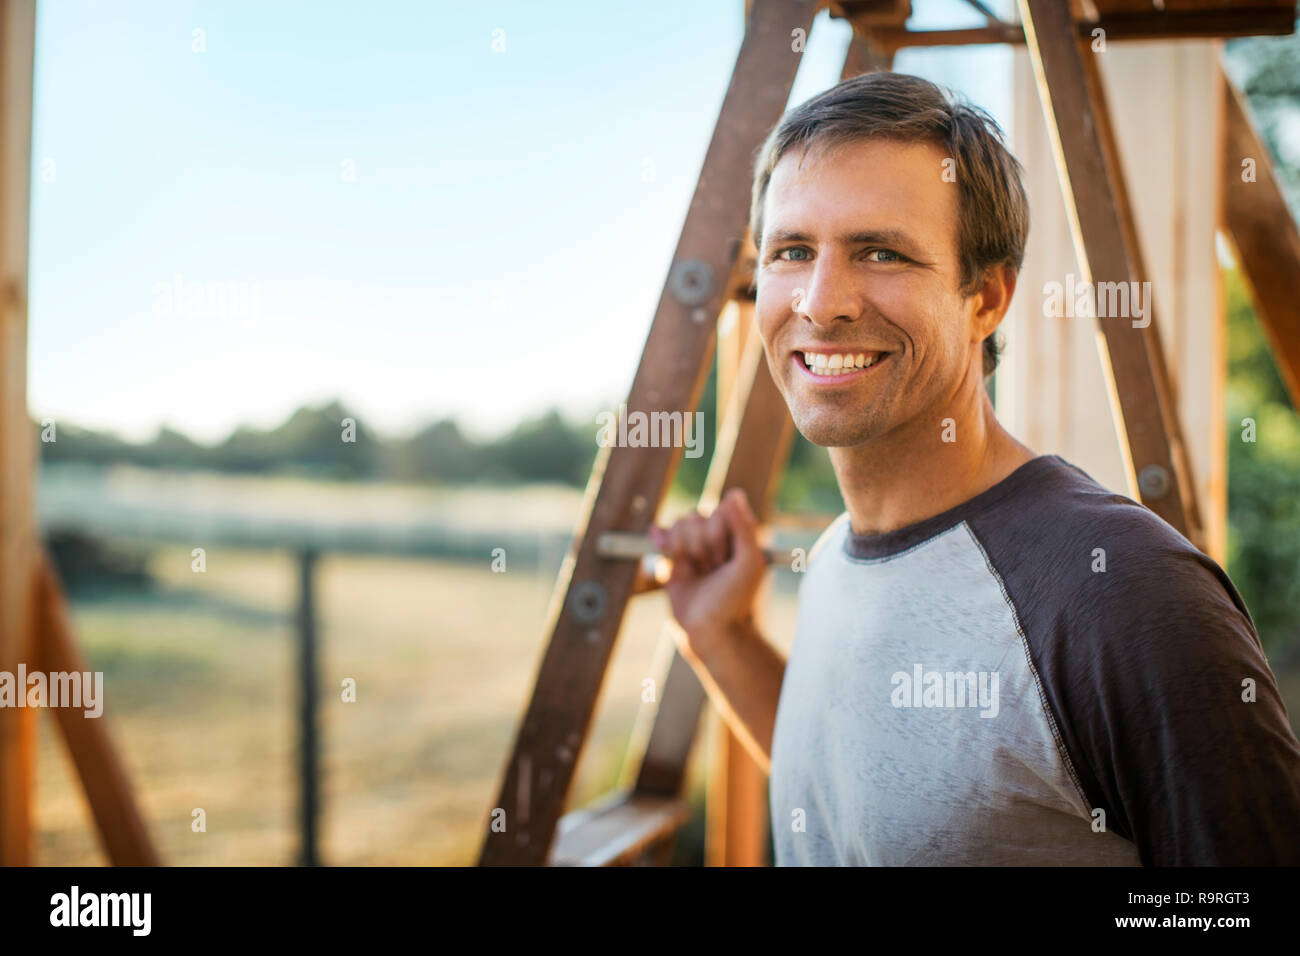 Smiling man stands next to a ladder in a house under construction. - Stock Image